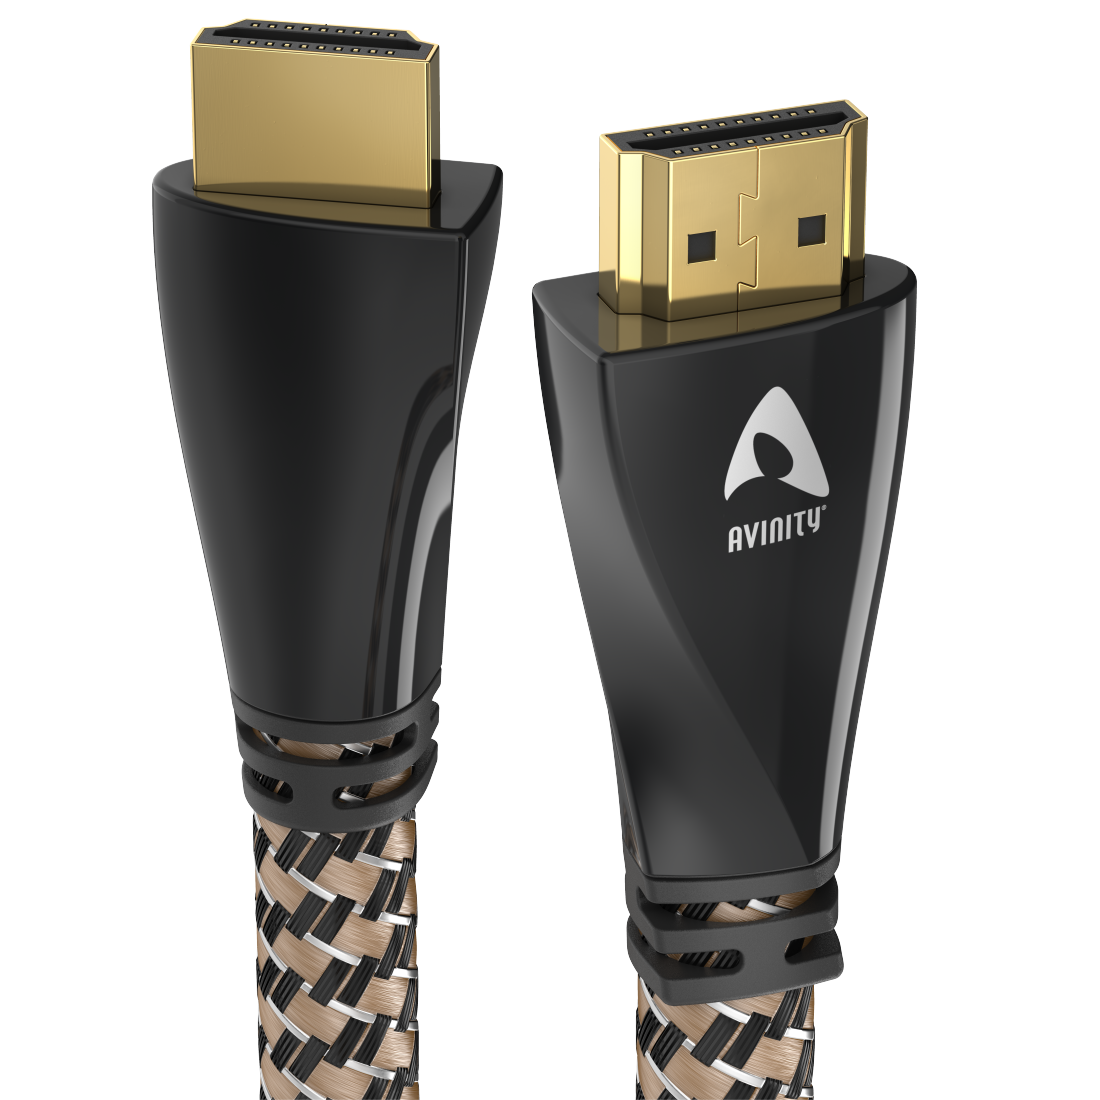 abx High-Res Image - Avinity, High Speed HDMI™ Cable, Plug-Plug, Fabric, gold-plated, Ethernet, 5 m